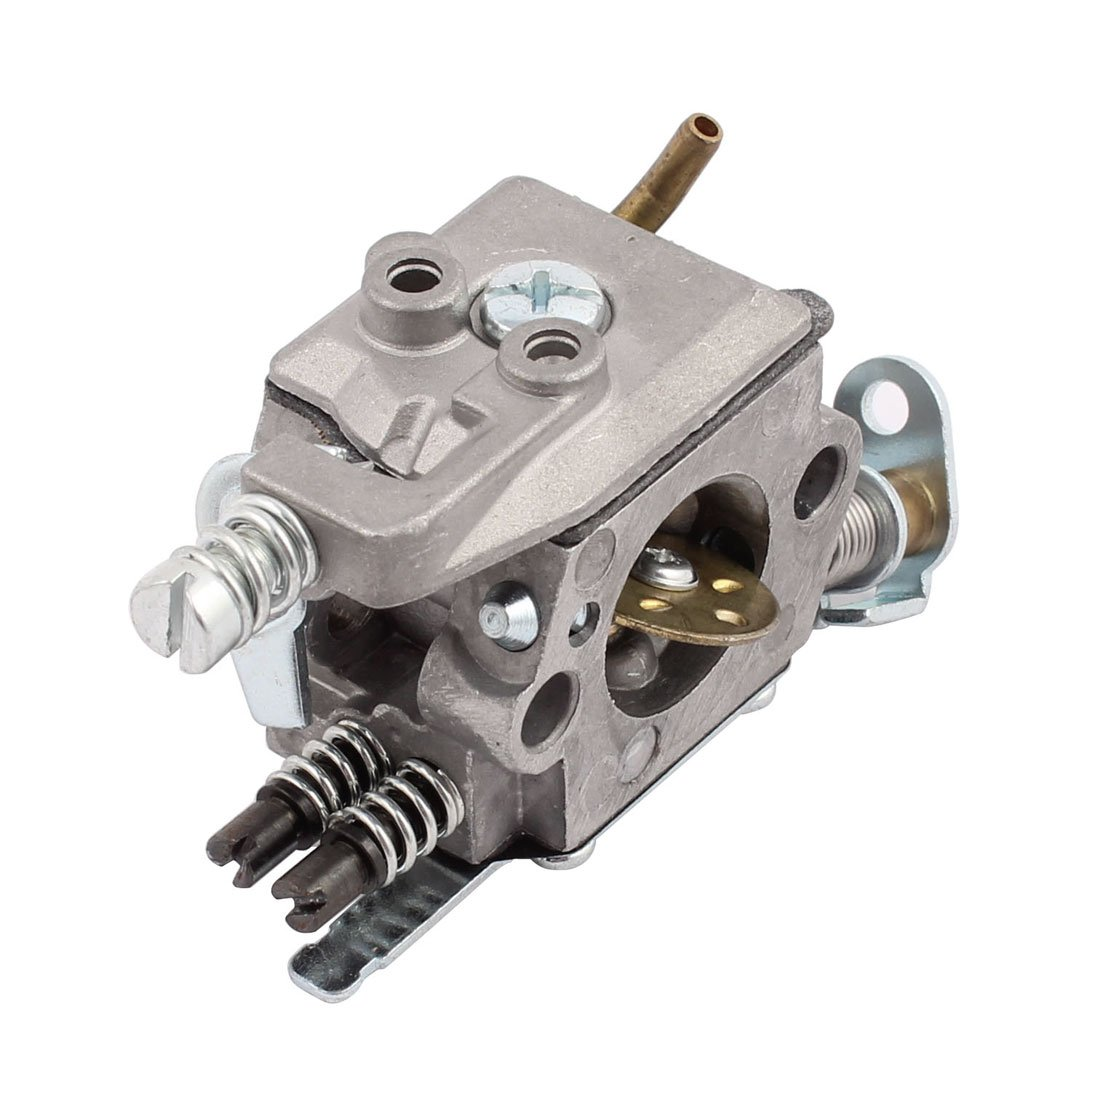 sourcingmap® New WT-834A Carburetor for Husqvarna Chainsaw 136 141 137 142 Carburador Carb a17051900ux1350